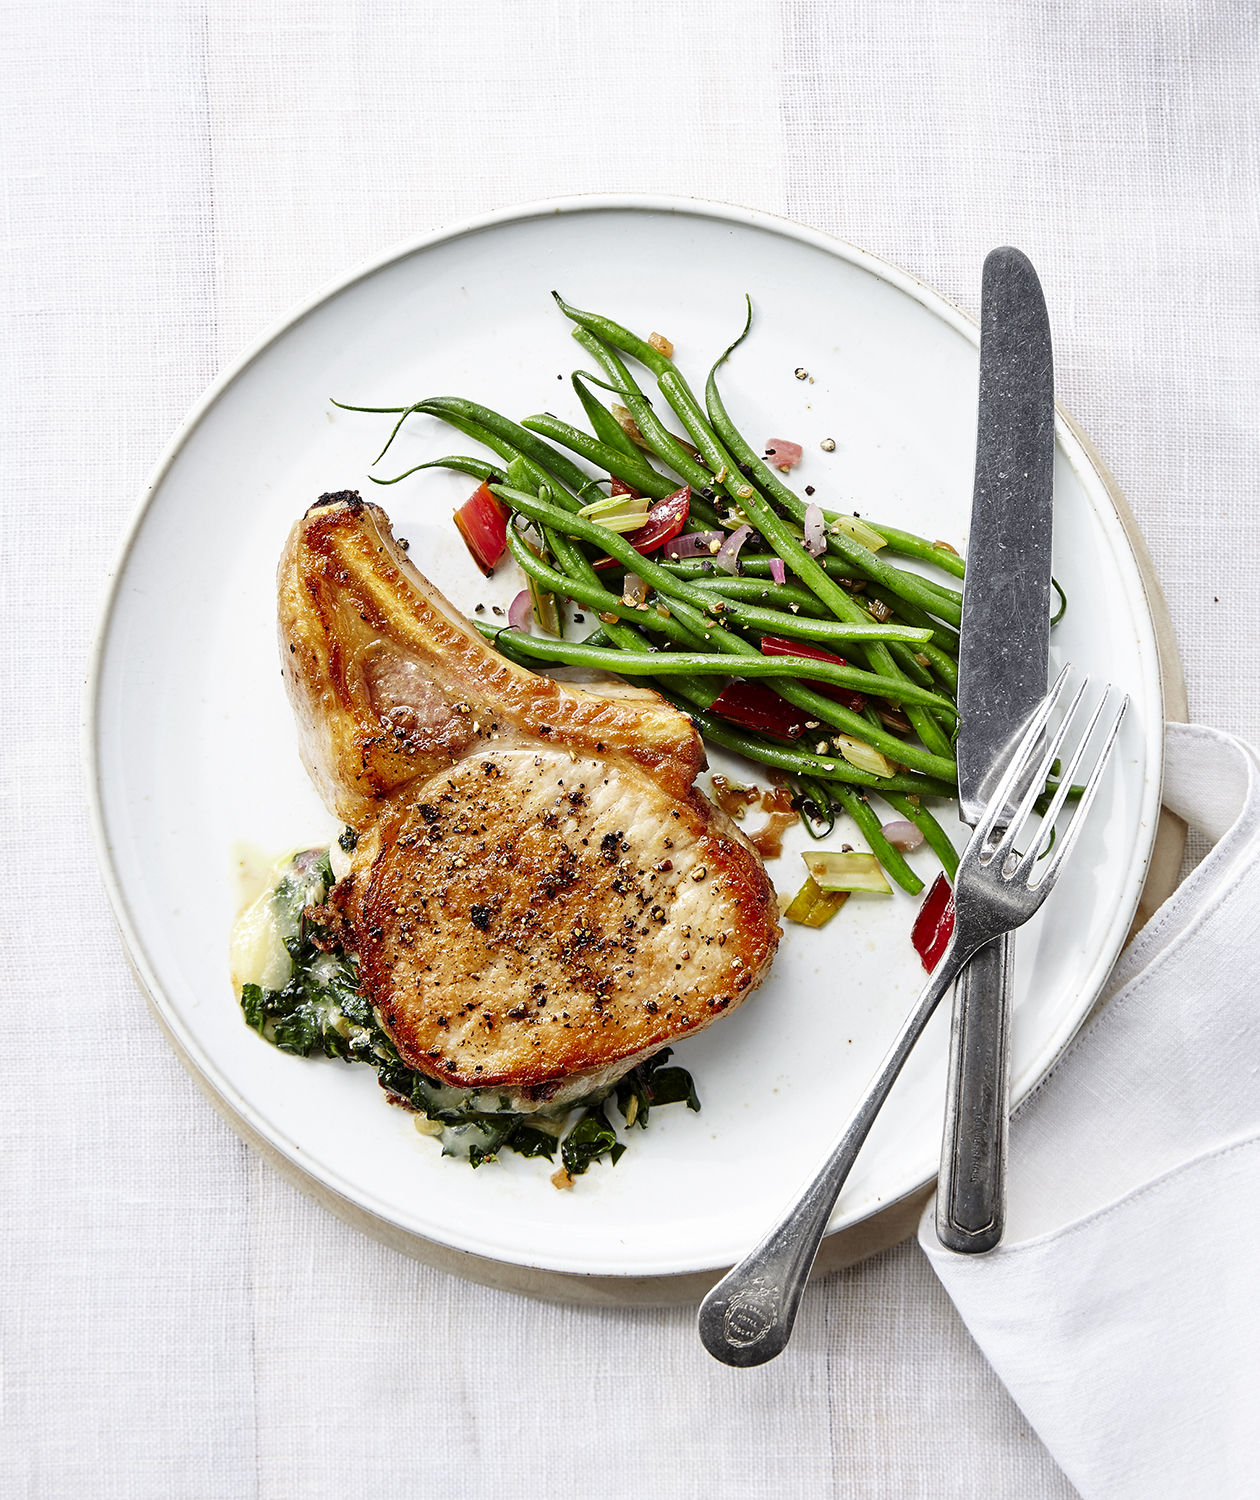 Chard-Stuffed Pork Chops with Green Beans